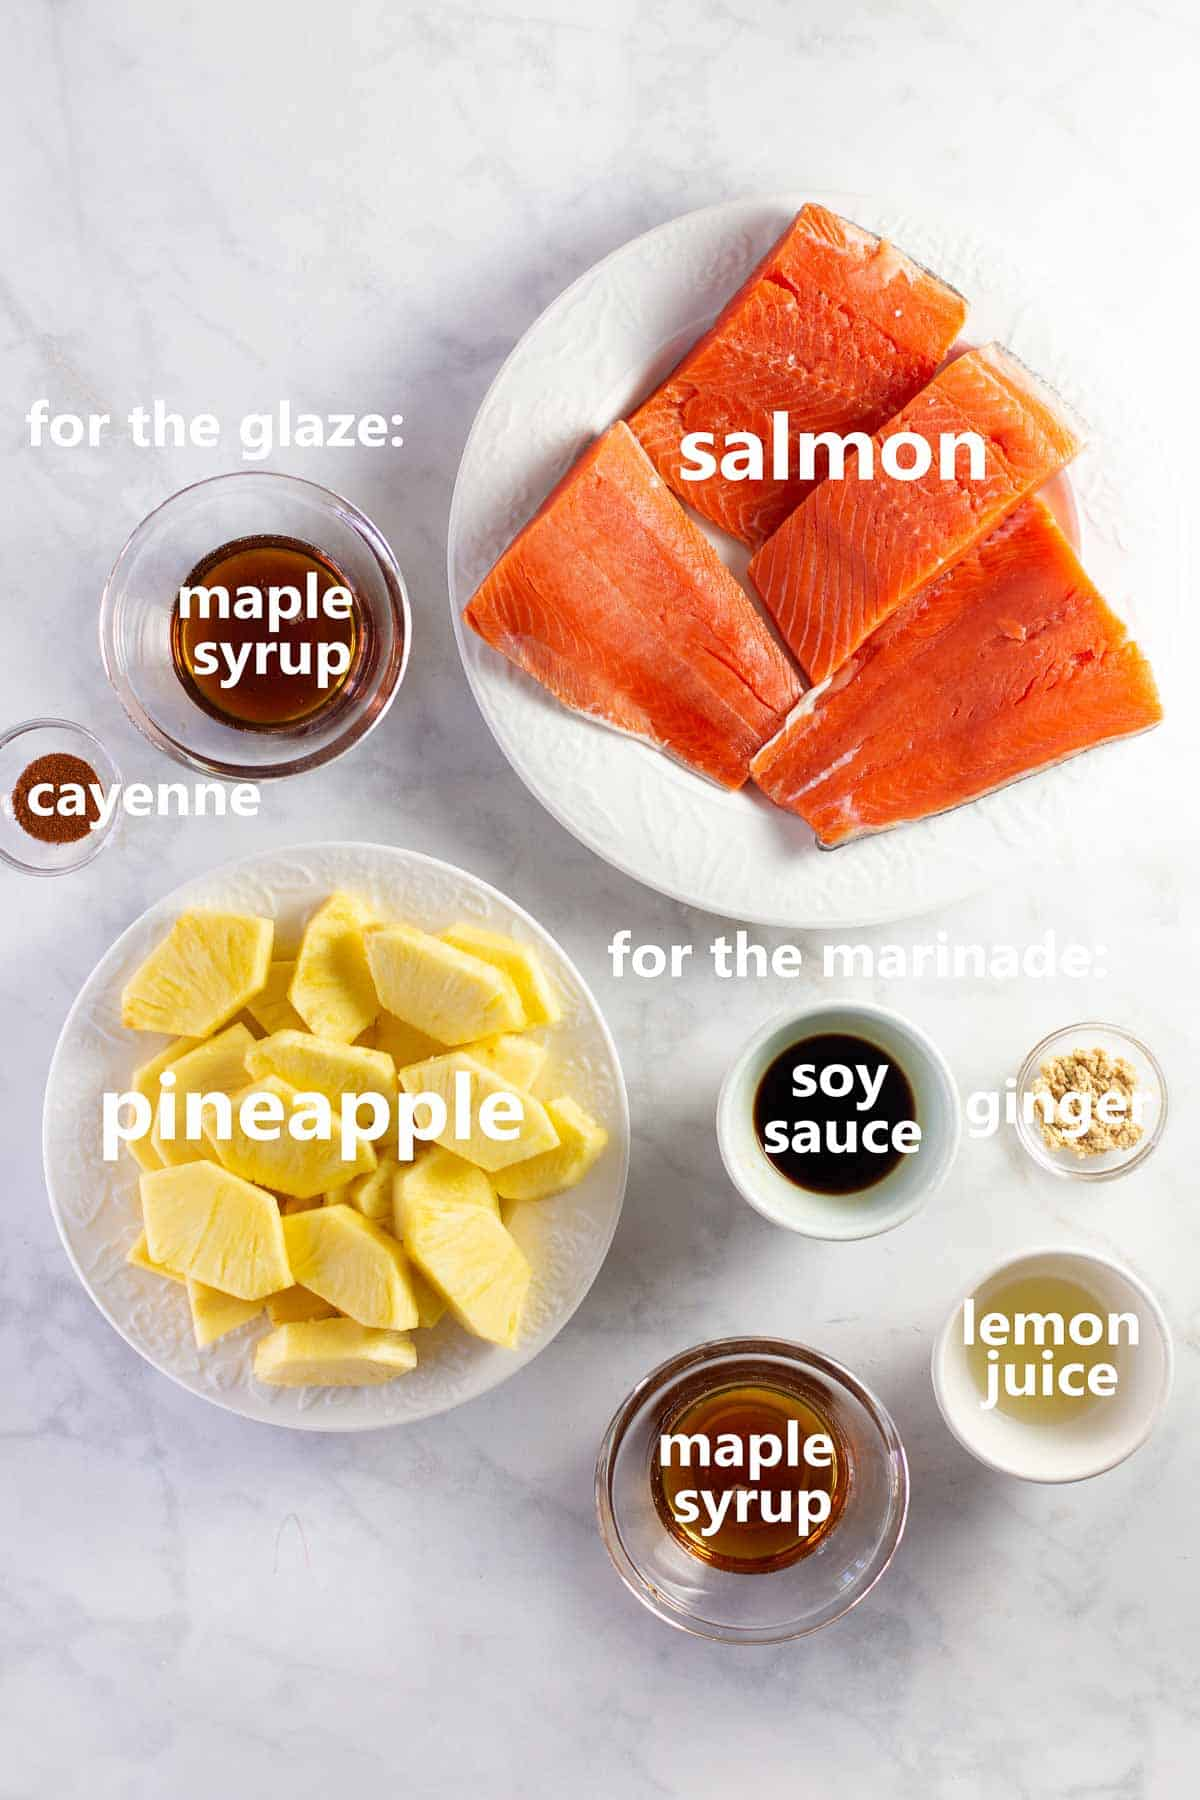 bowls of ingredients needed to make Hawaiian salmon dinner